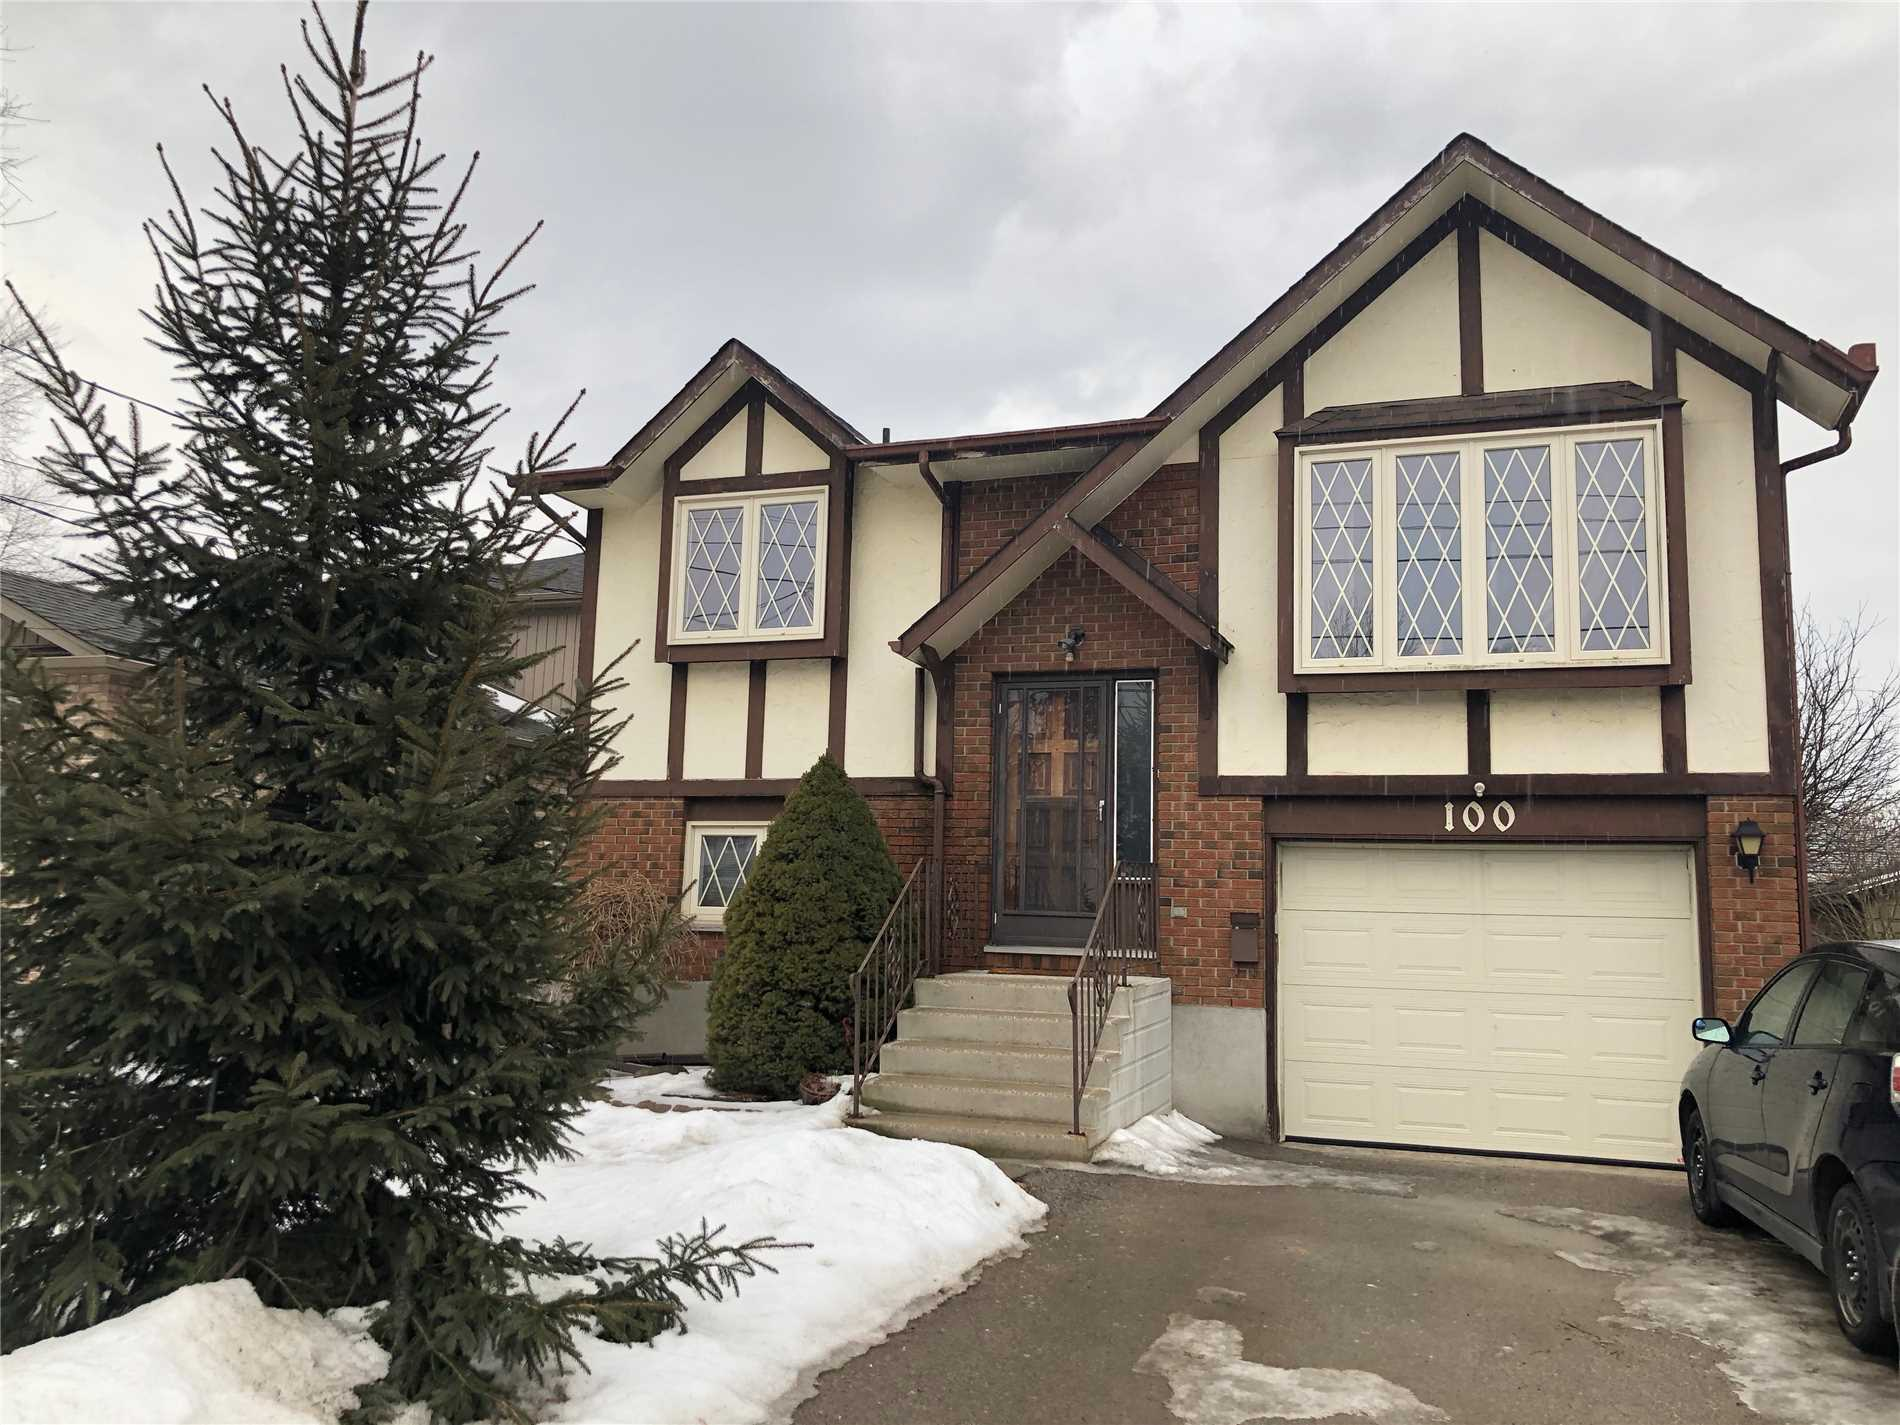 Beautiful Detached Home In Desirable Neighbourhood. Stunning Layout & Large Three Bedrooms. Fully Finished Basement With An Incredible Built In Bar. Minutes Away From Downtown & University Of Guelph. Close To Many Amenities, Restaurants Parks & Trails.  A Must See Property!